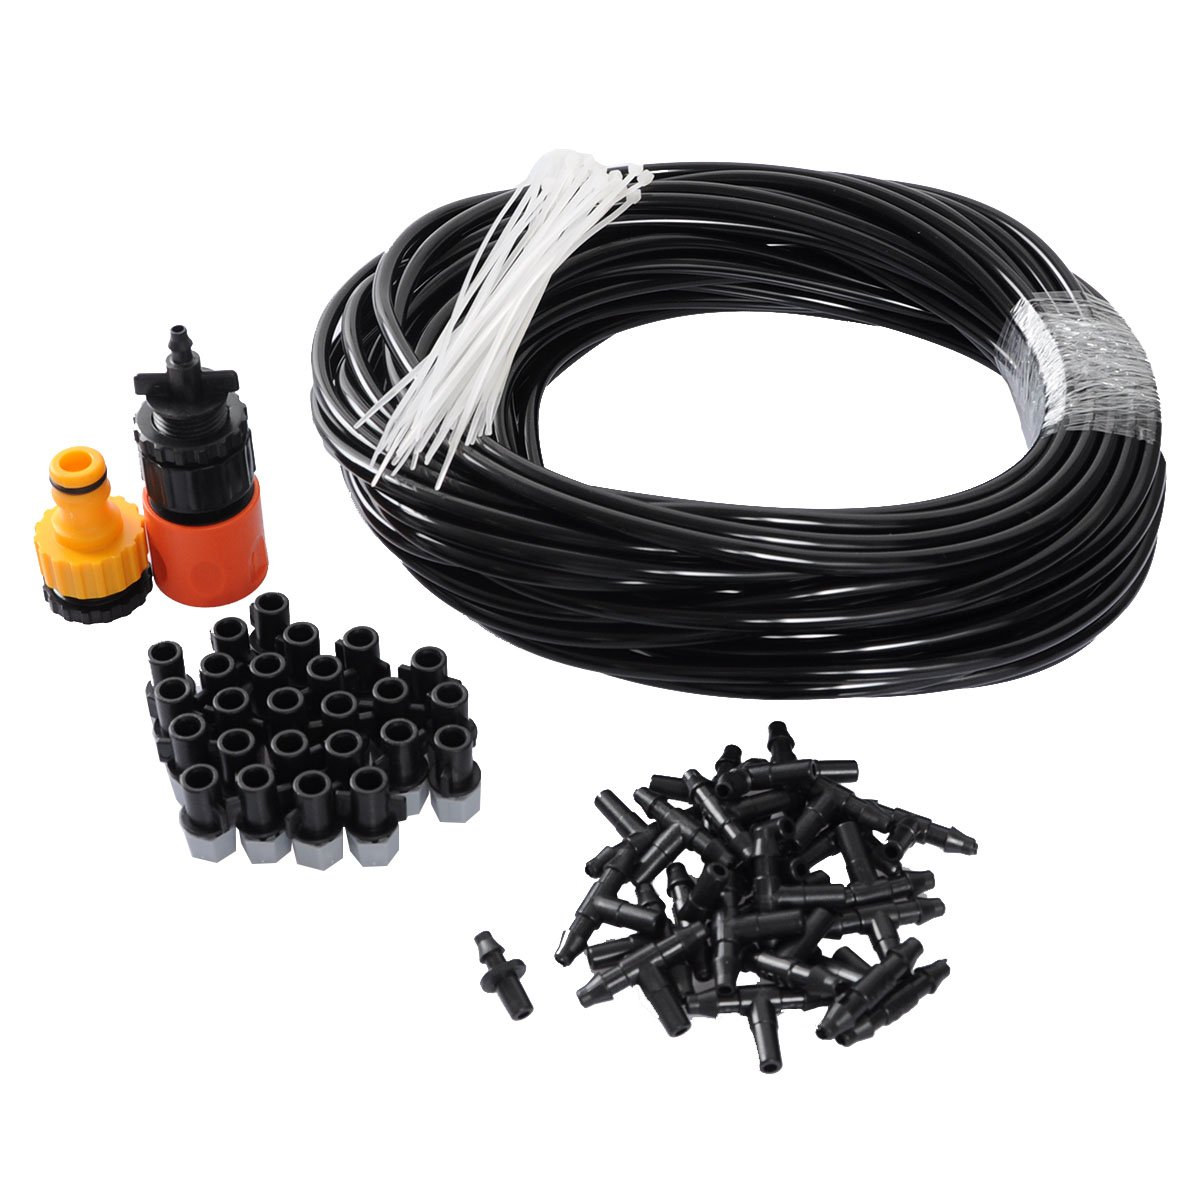 82ft Diy Mist Cooling System Kit For Garden Greenhouse Outdoor Patio Wiring Home Watering With 25pcs Plastic Nozzle Outdoors